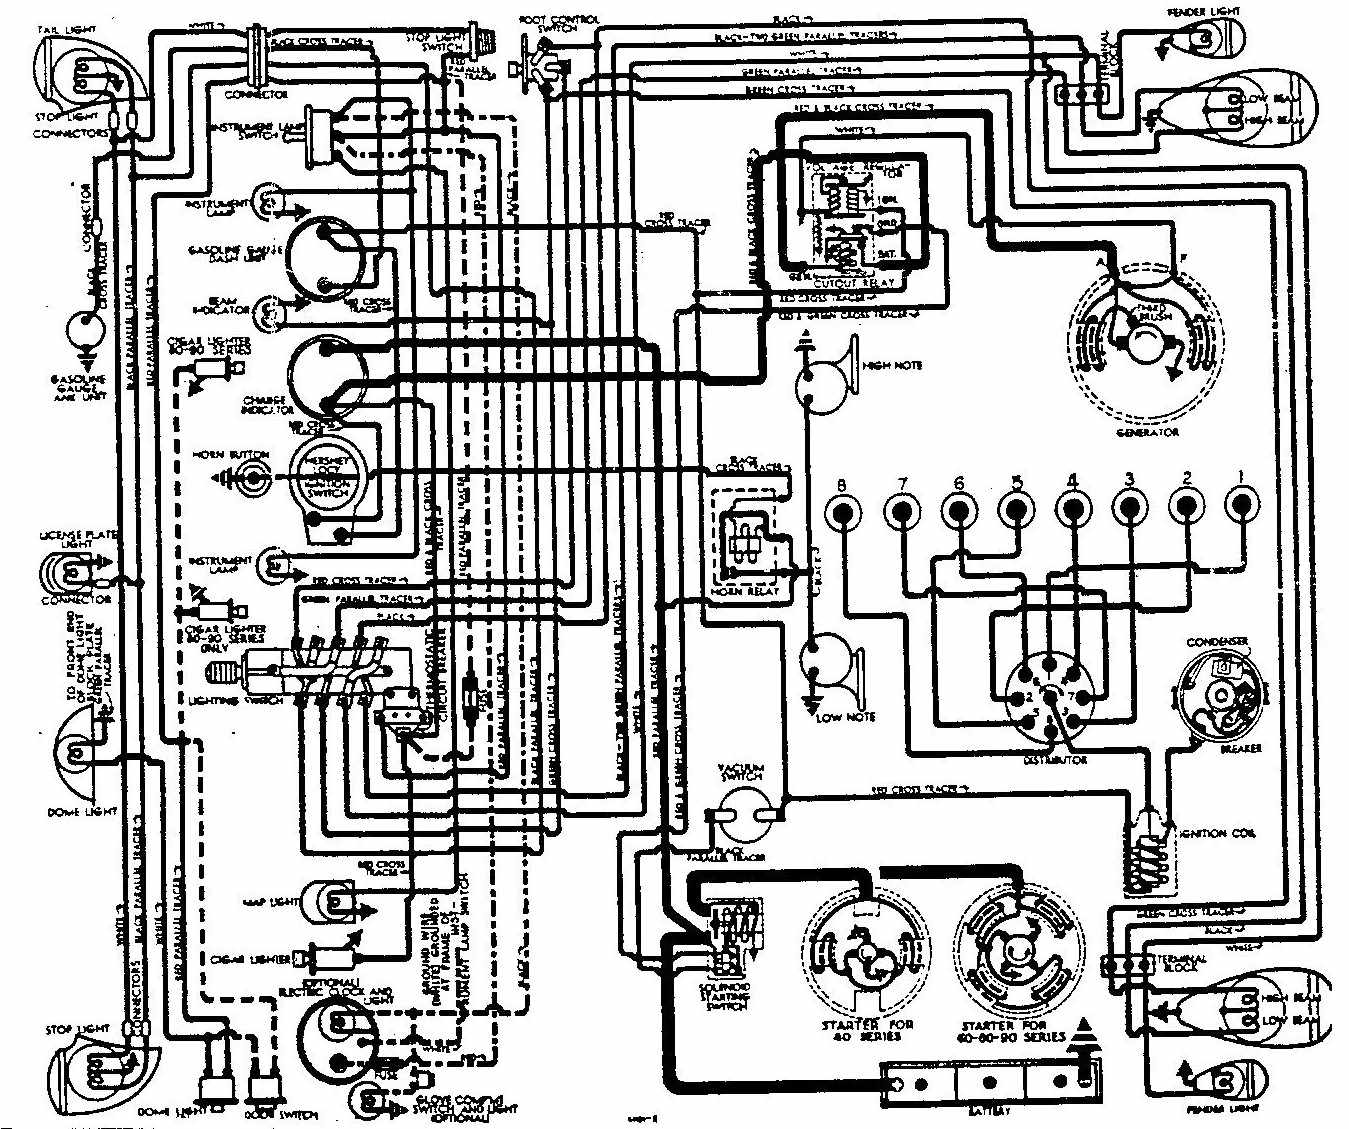 hight resolution of 1956 ford wiring diagram free wiring library rh 79 codingcommunity de 56 ford fairlane wiring diagram ford turn signal wiring diagram